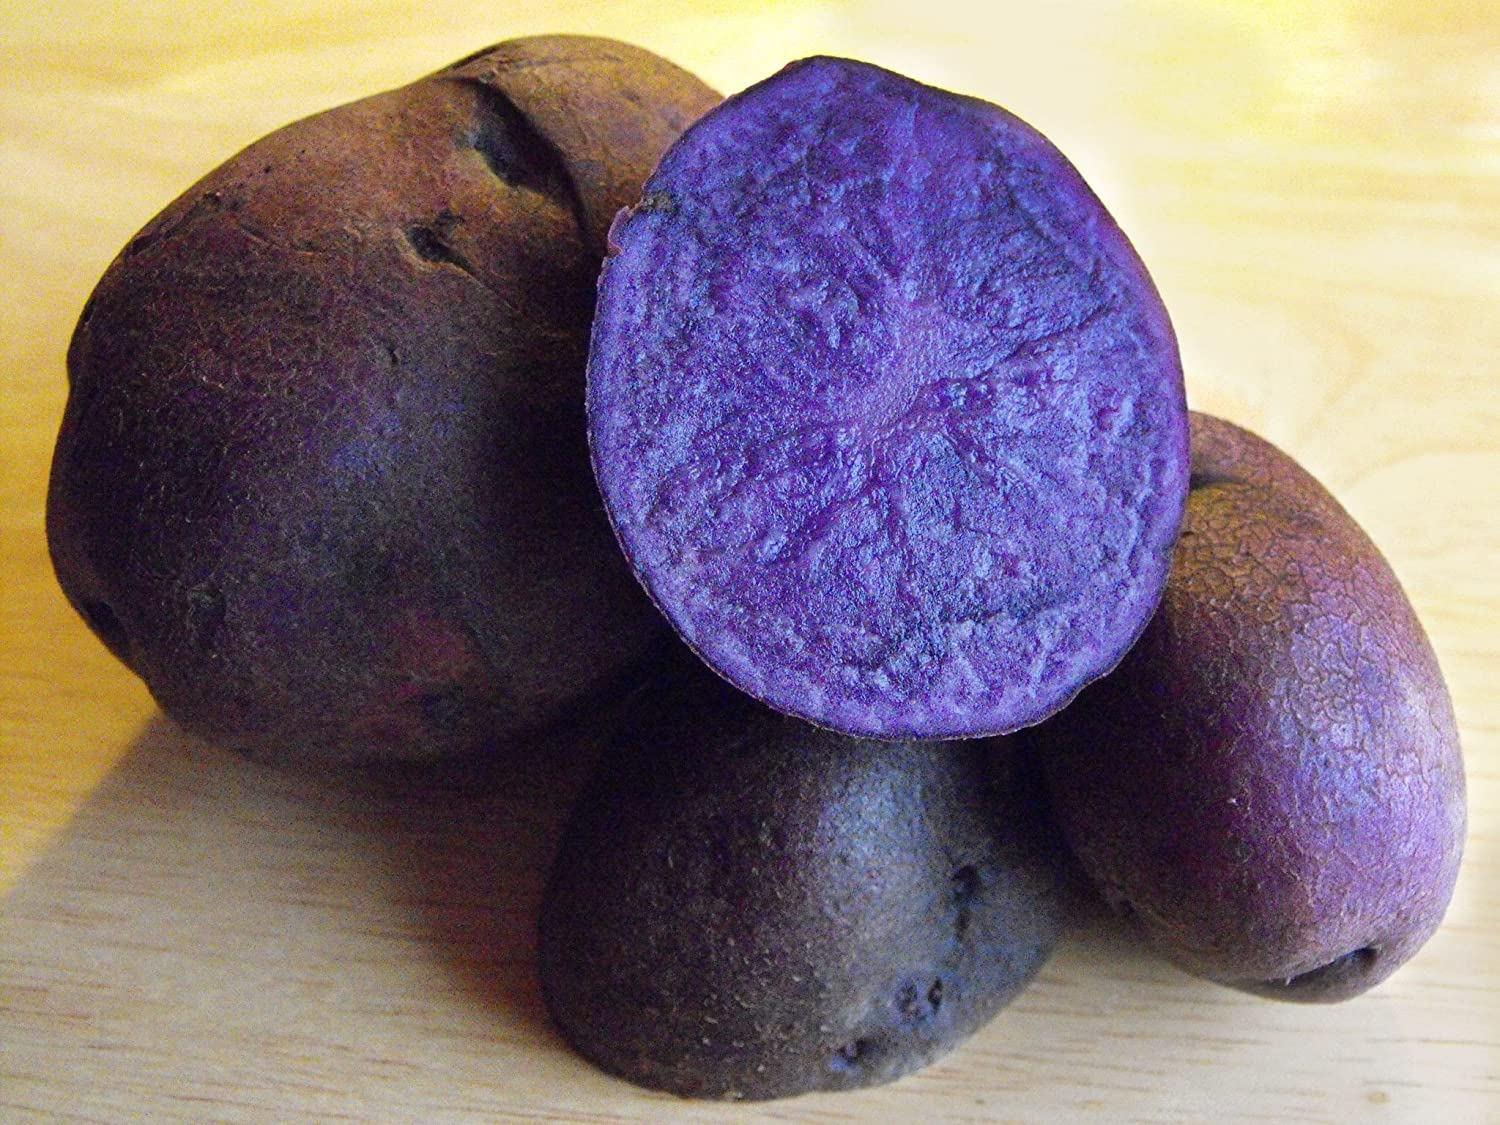 Color-Mix-Seed-Potato-Mix-Speciality-Potato-Blue-Red-Yellow-White-Excellent  (5 LBS): Amazon.com: Grocery & Gourmet Food